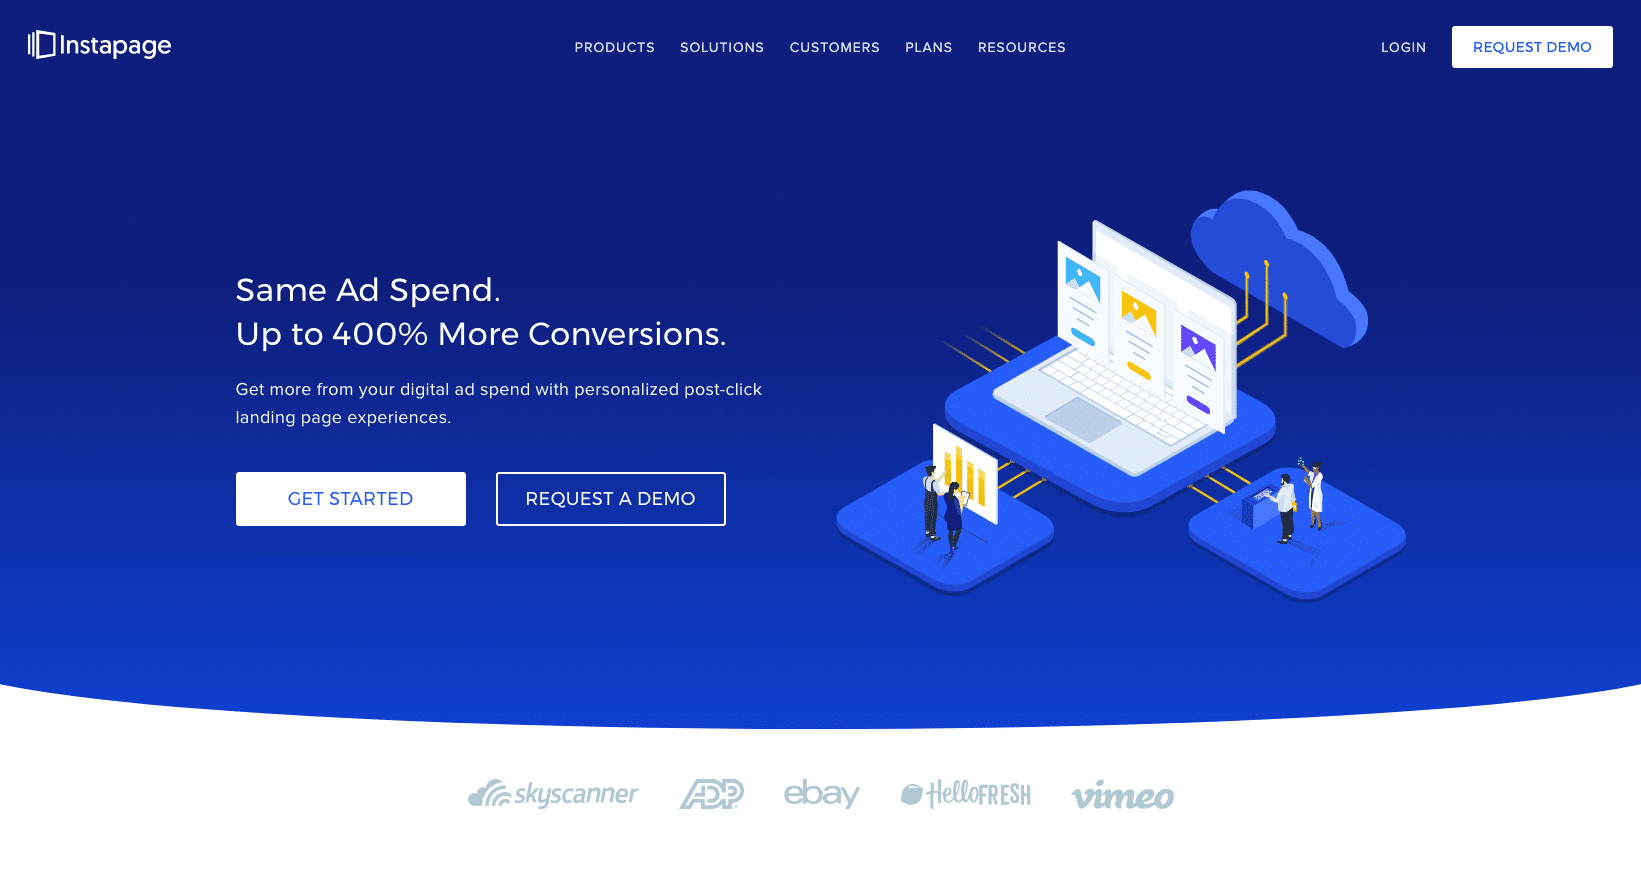 Instapage - The Advertising Conversion Cloud